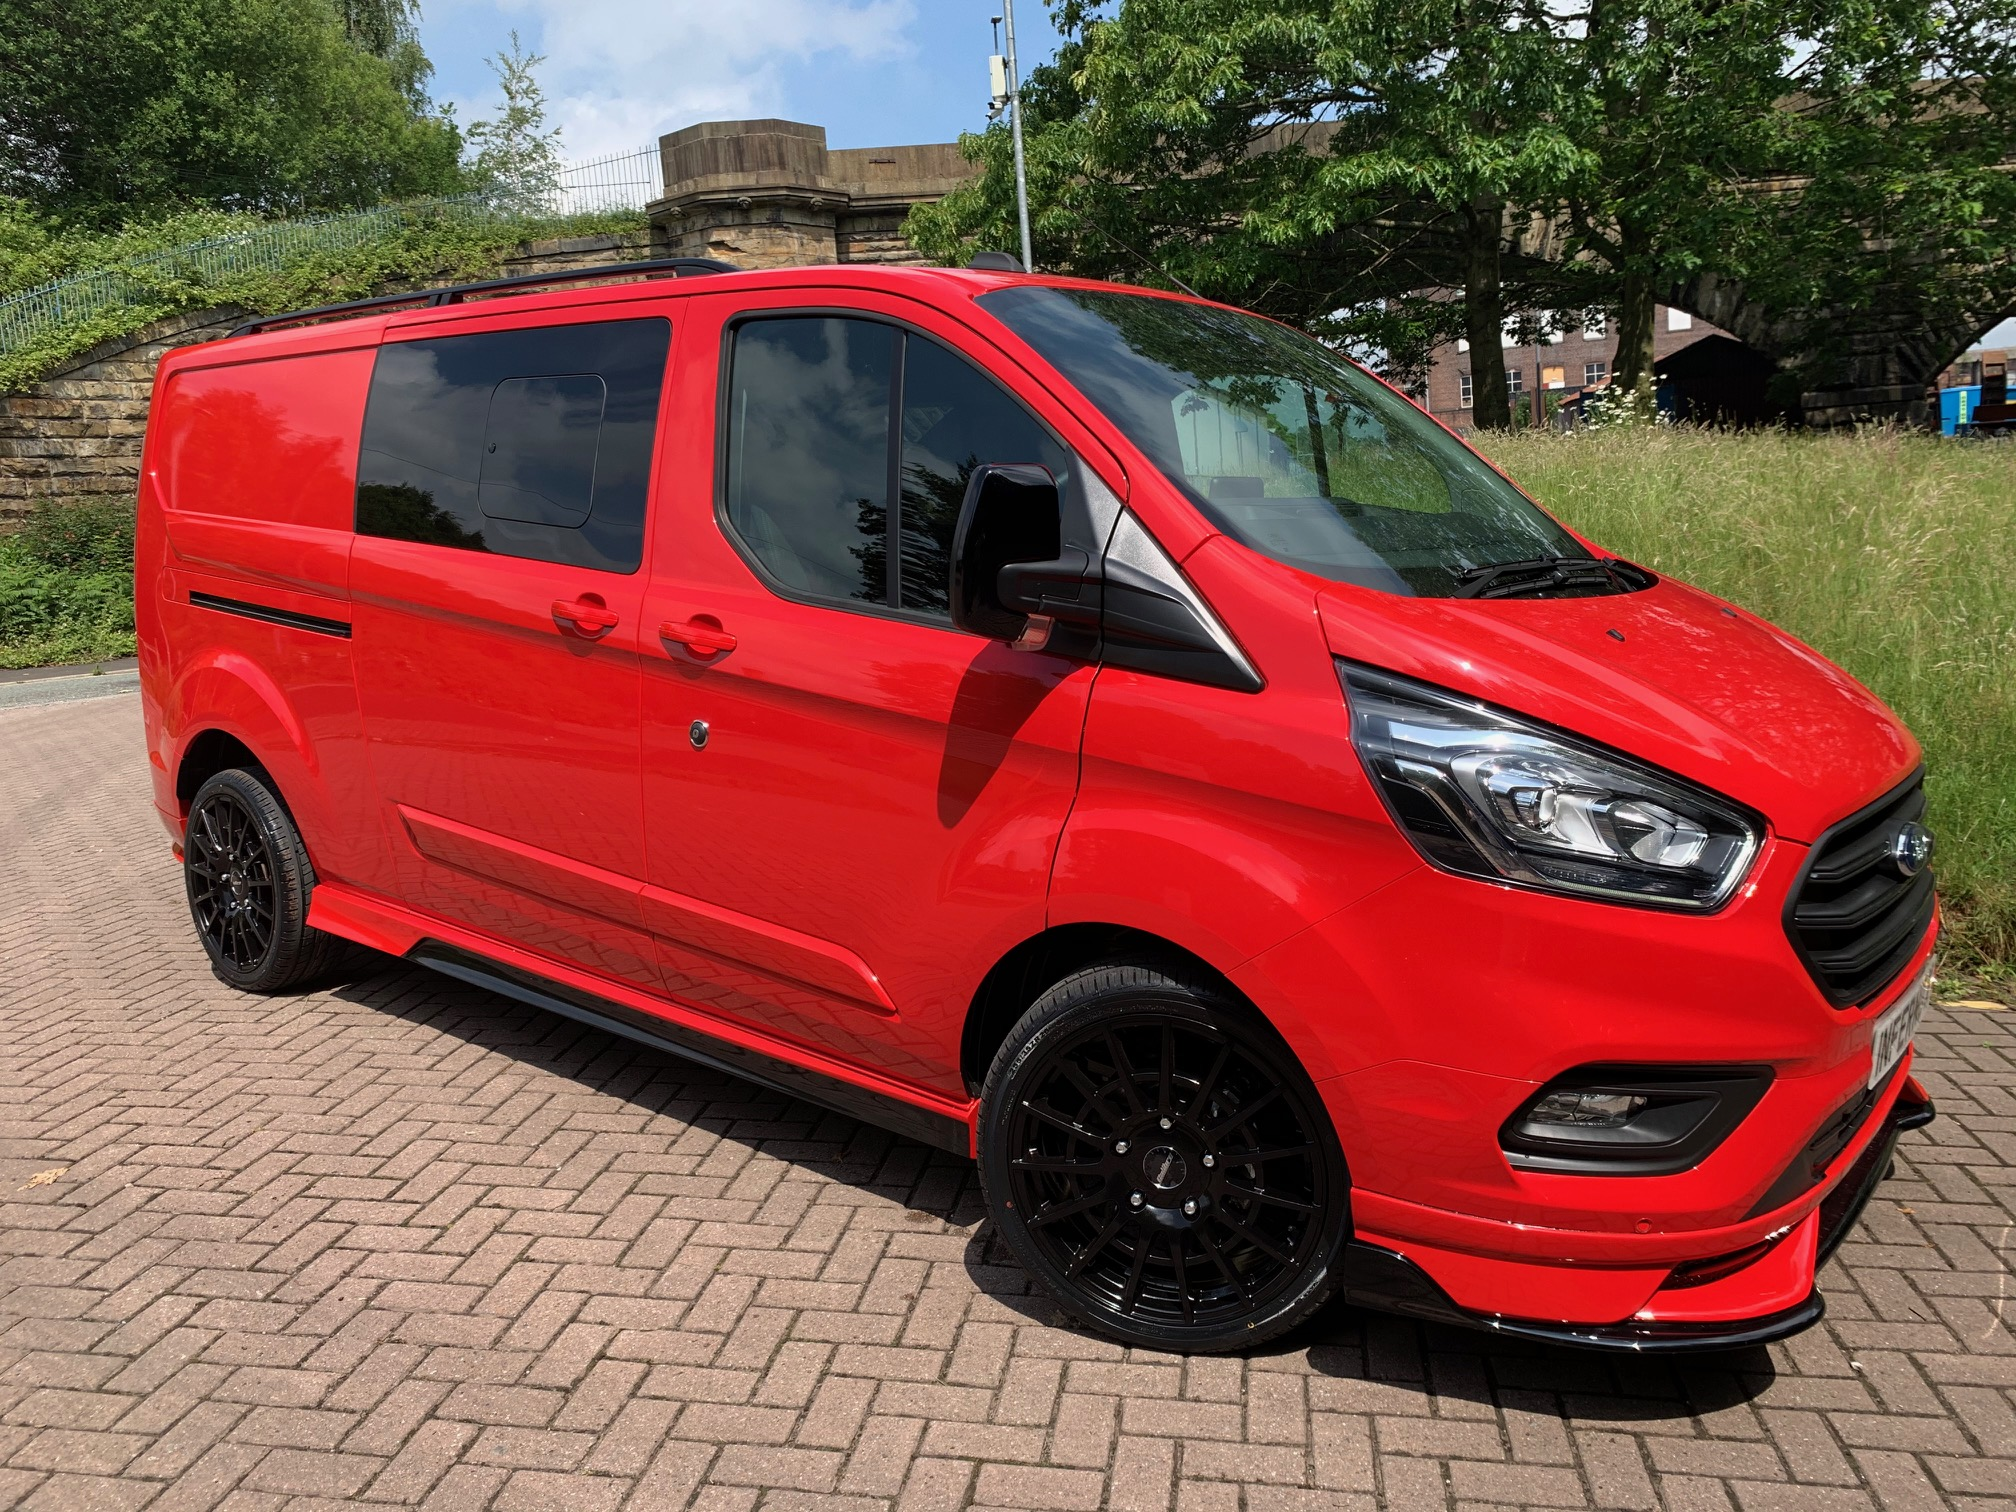 IMG_5694.jpg - Inferno X 320 L2 Double Cab In Van 2.0tdci 130 Limited